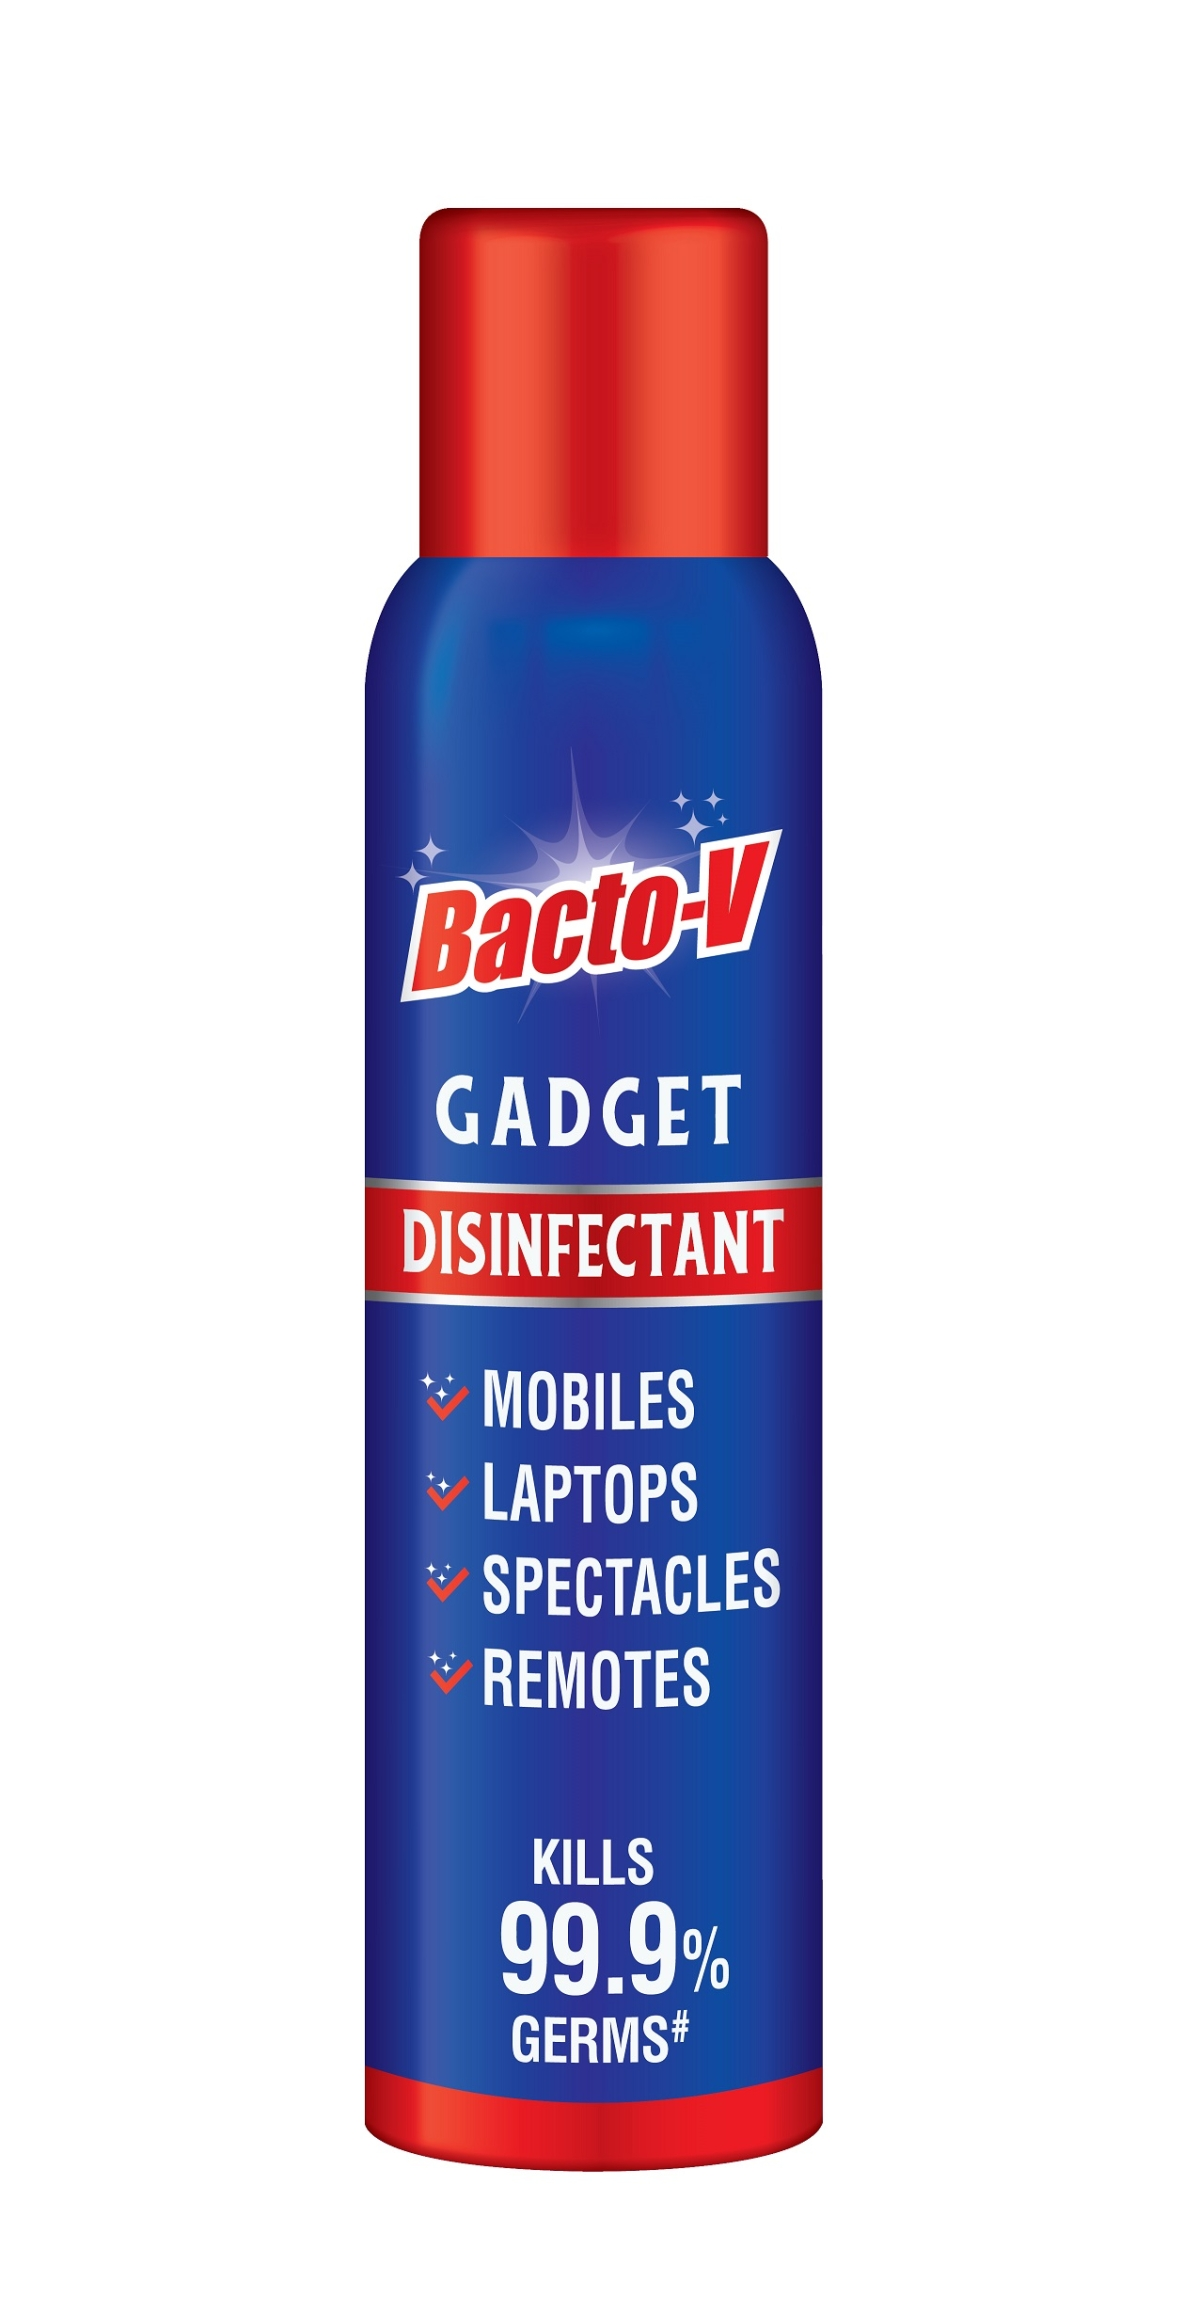 Bacto-V Gadget Disinfectant